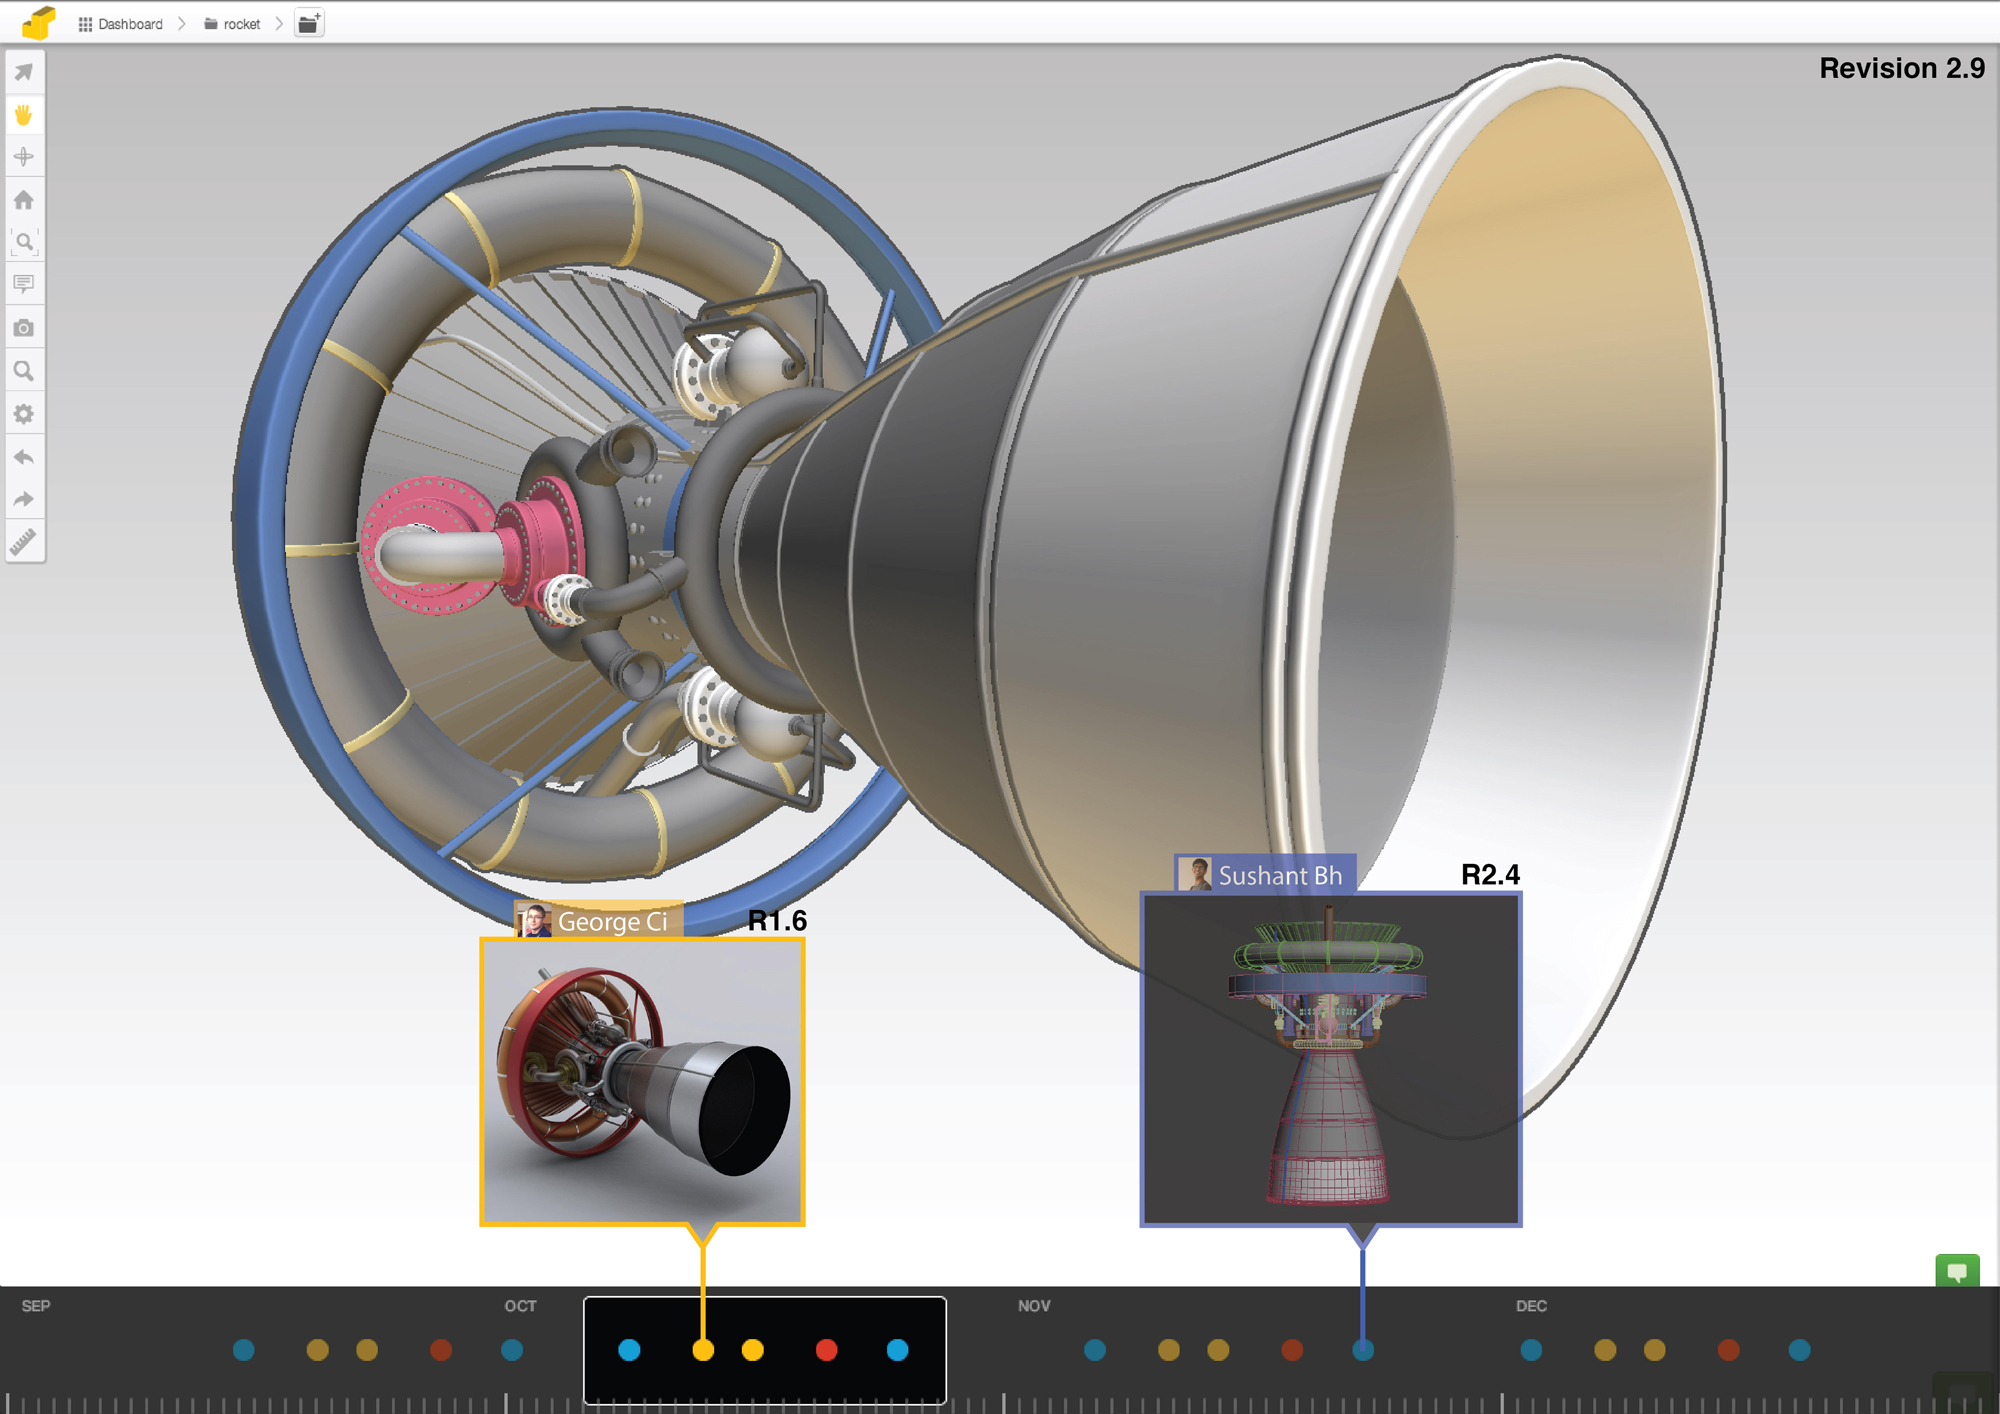 Worlds First Open Source 3 D Printed Rocket Engine Aim Of New Liquid Diagram Contest